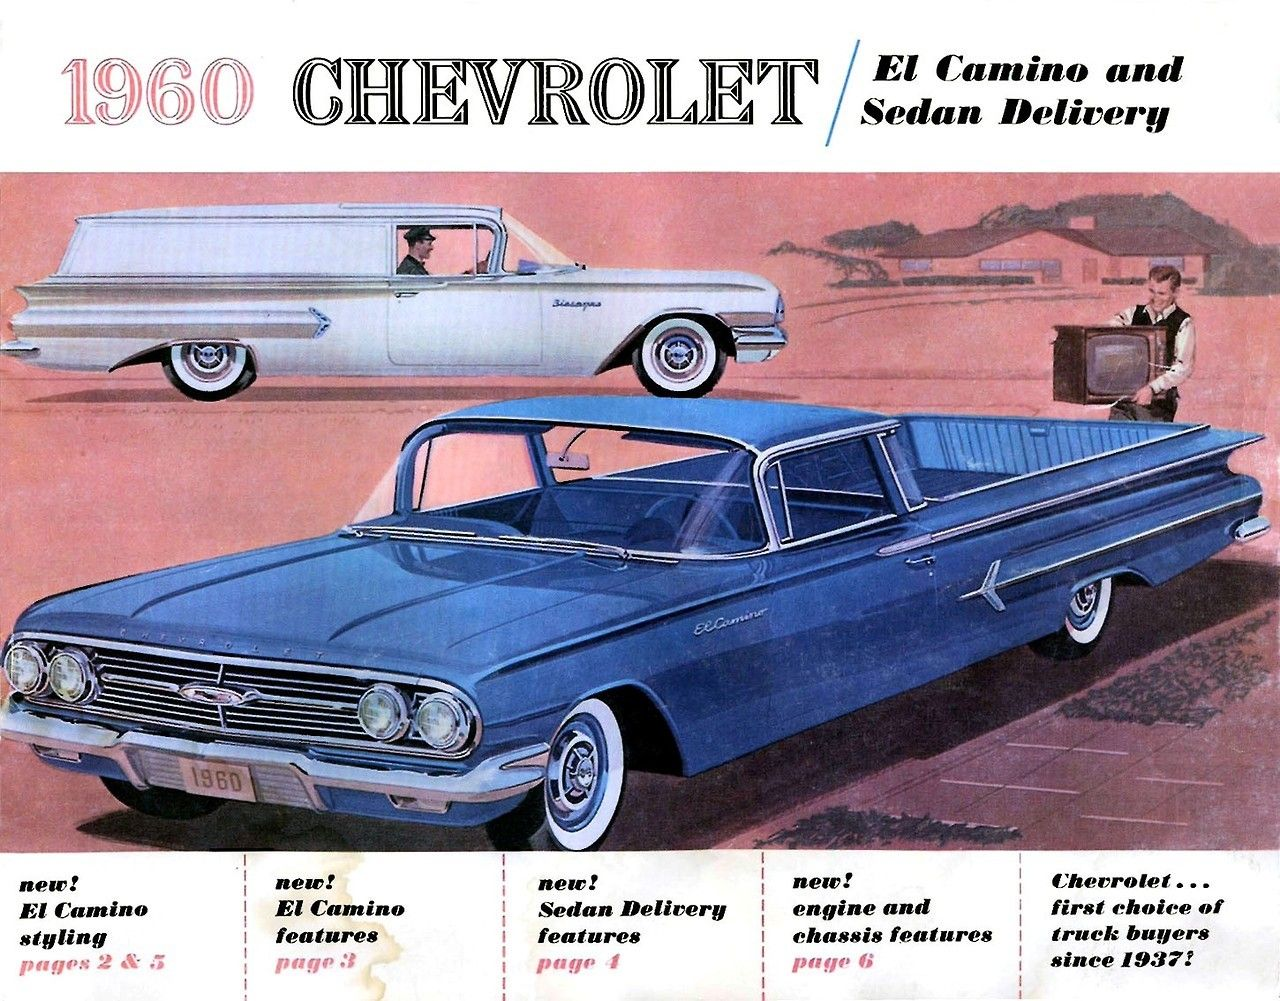 Elky And Sedan Delivery Brochure Cover 1960 Illustration With Images Chevrolet El Camino Car Chevrolet Chevrolet